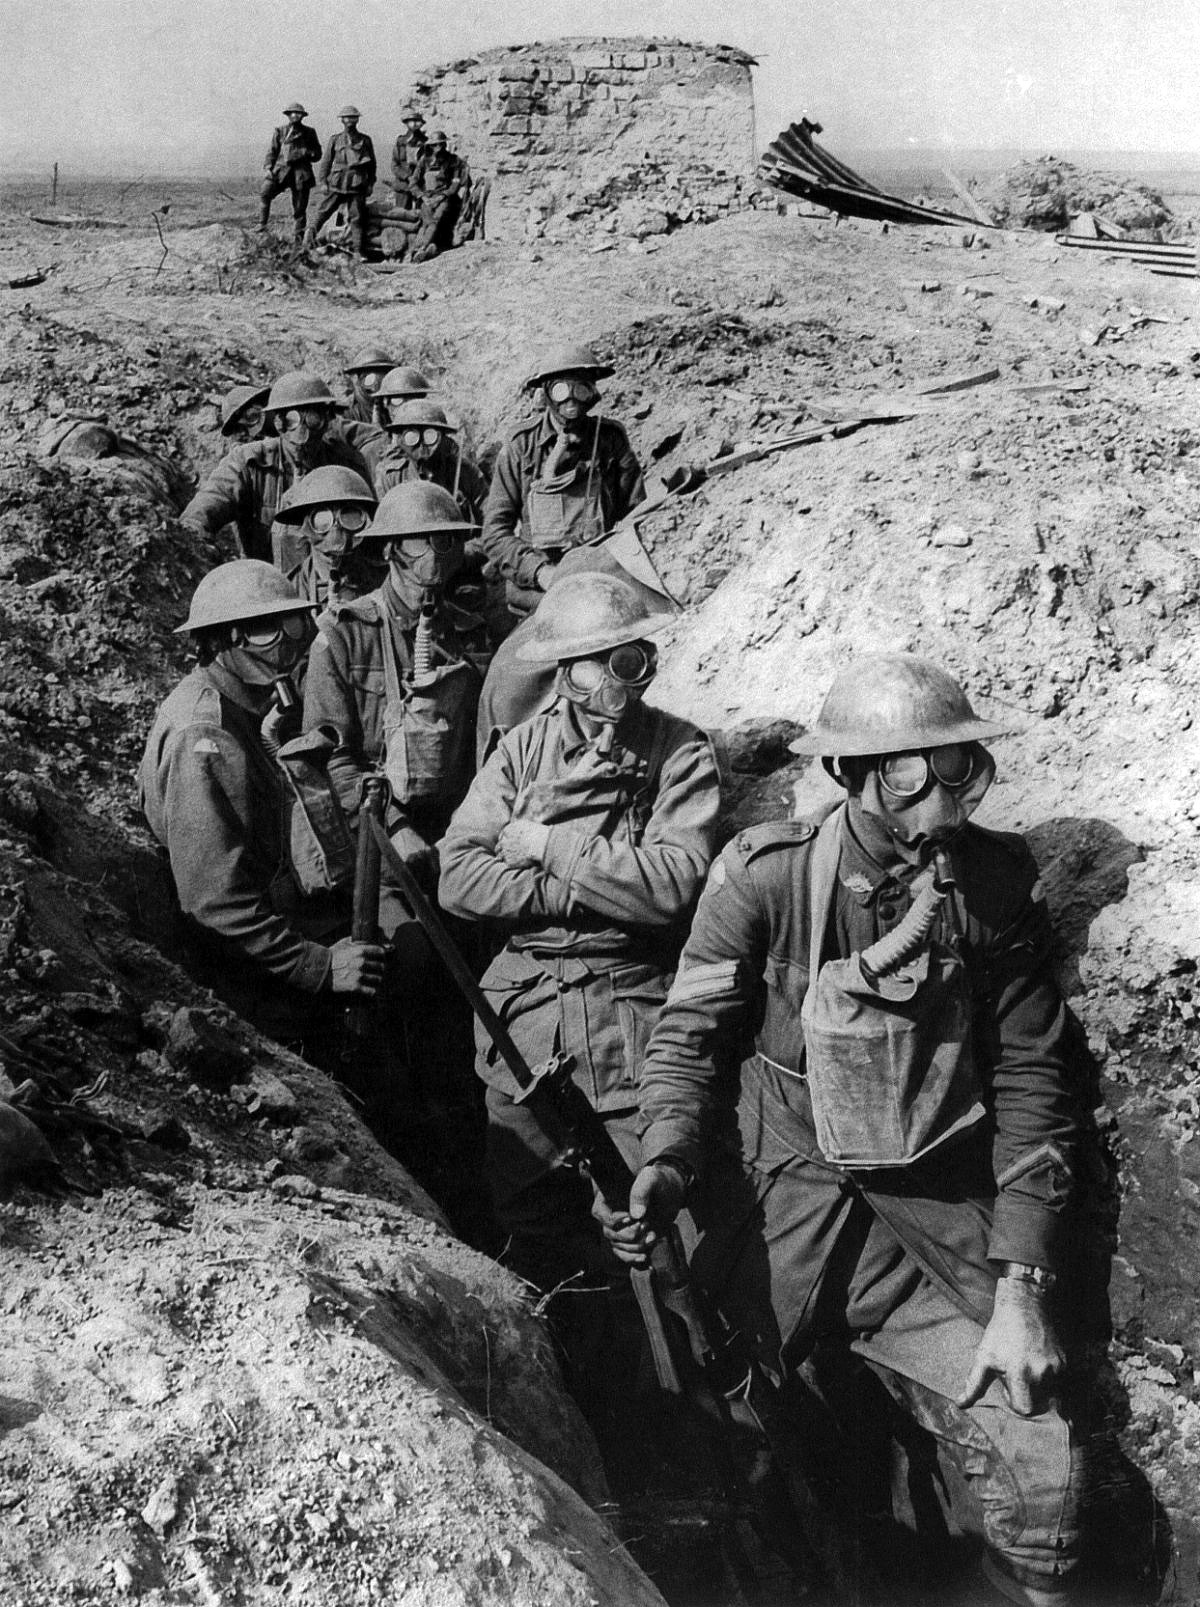 Passchendaele was a horrendous campaign, involving solid toil and loss for a solid 6 months. The ultimate tragedy was that the following year, Germany would make up the losses and then some in their own lightening campaigns.